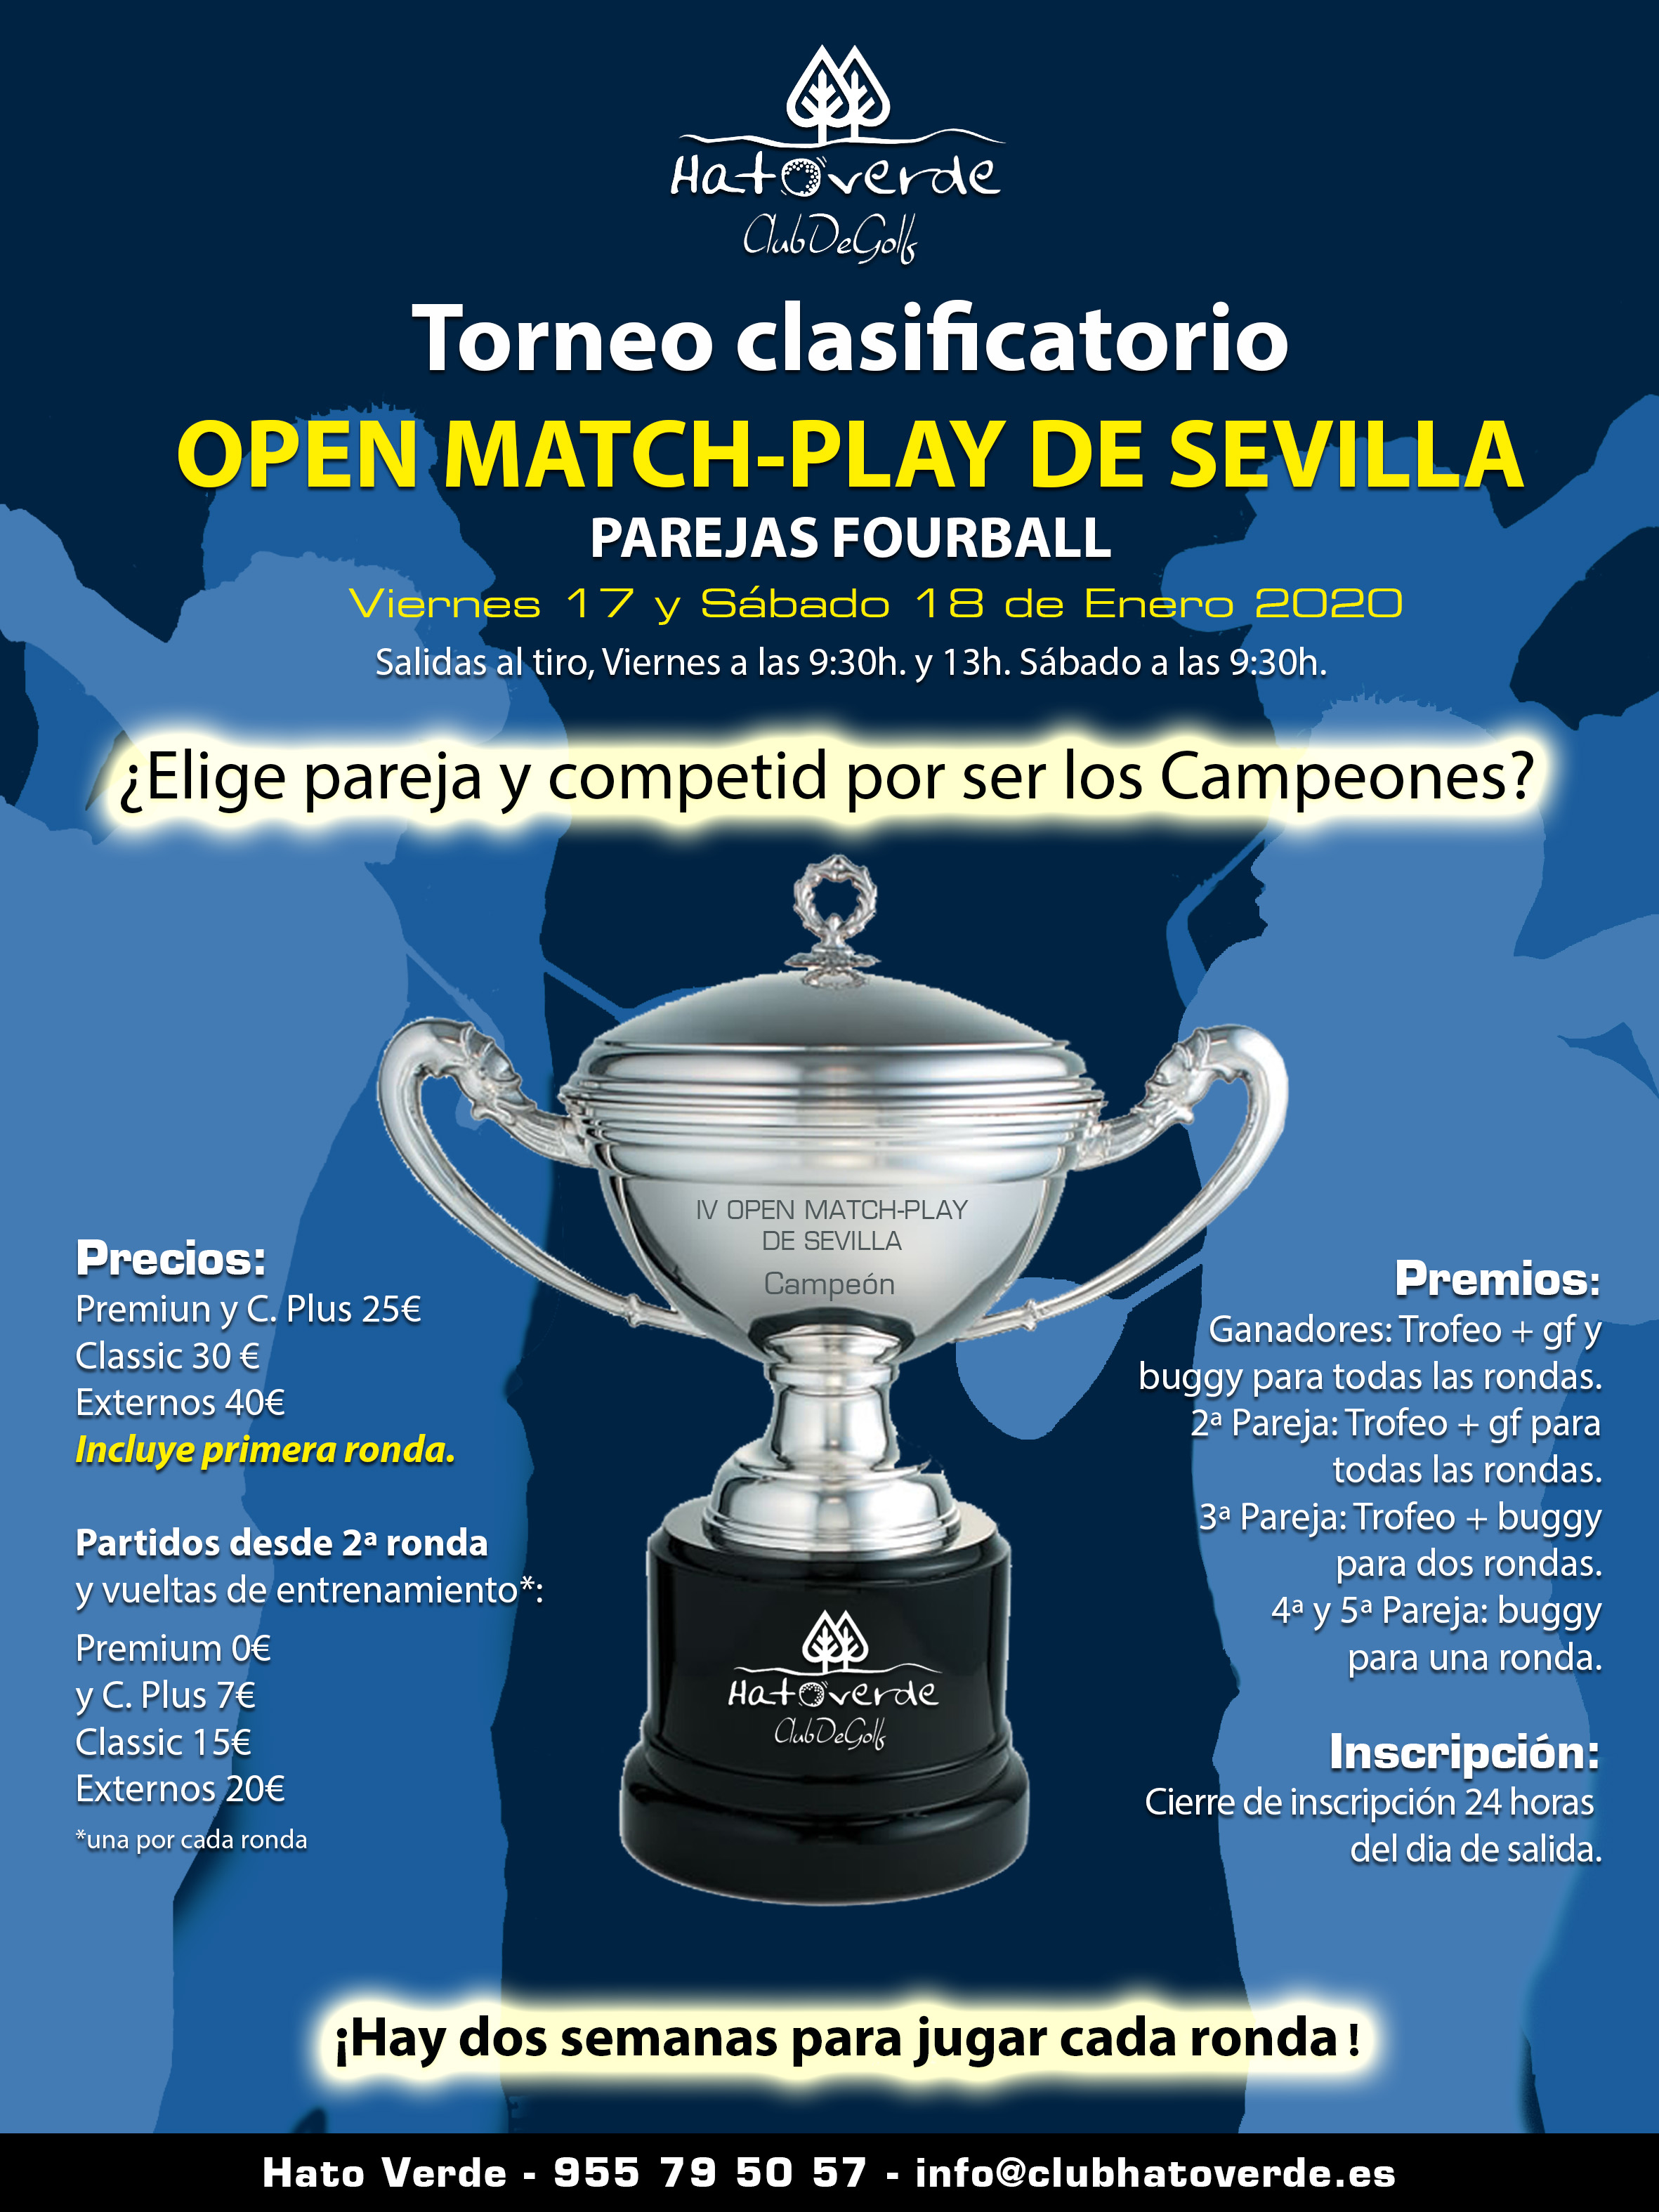 Torneo Clasificatorio open match-play de Sevilla